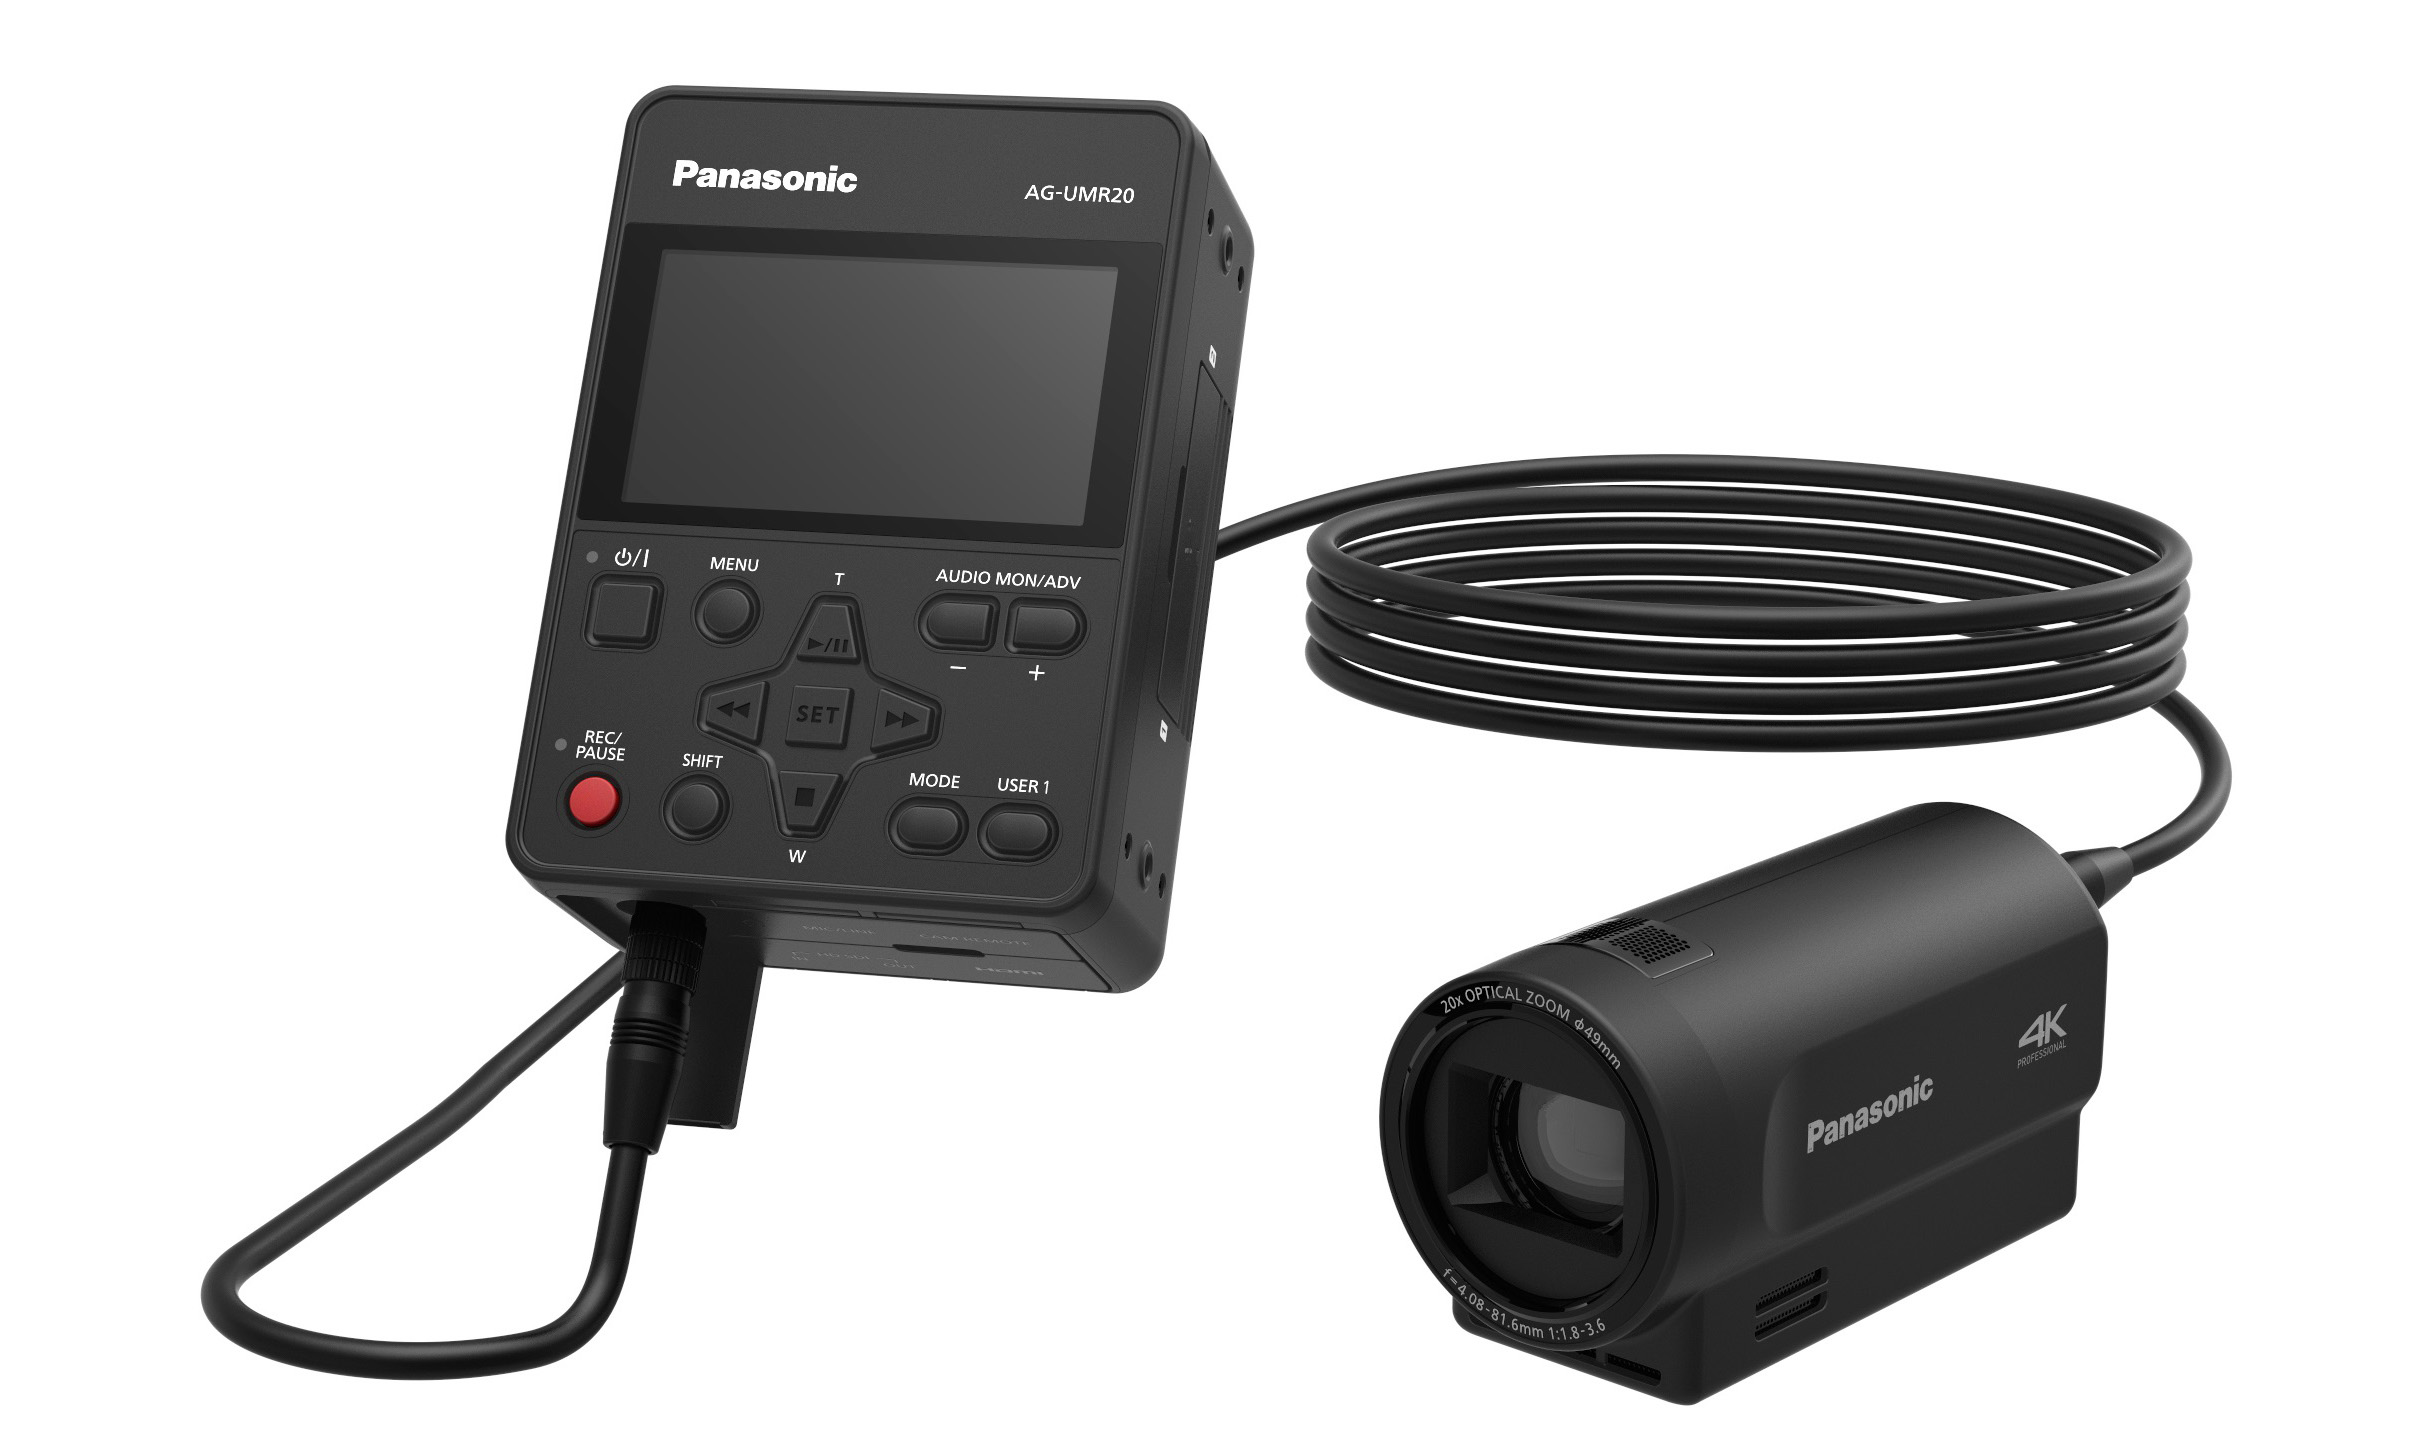 Live From Nab 2017 Panasonic Media Entertainment Co Offers New Ptz Camera Wiring Diagram The Ag Umr20 Compact Field Recorder And Companion Uck20 4k Head Facilitate Image Capture Advanced Ip Control Streaming